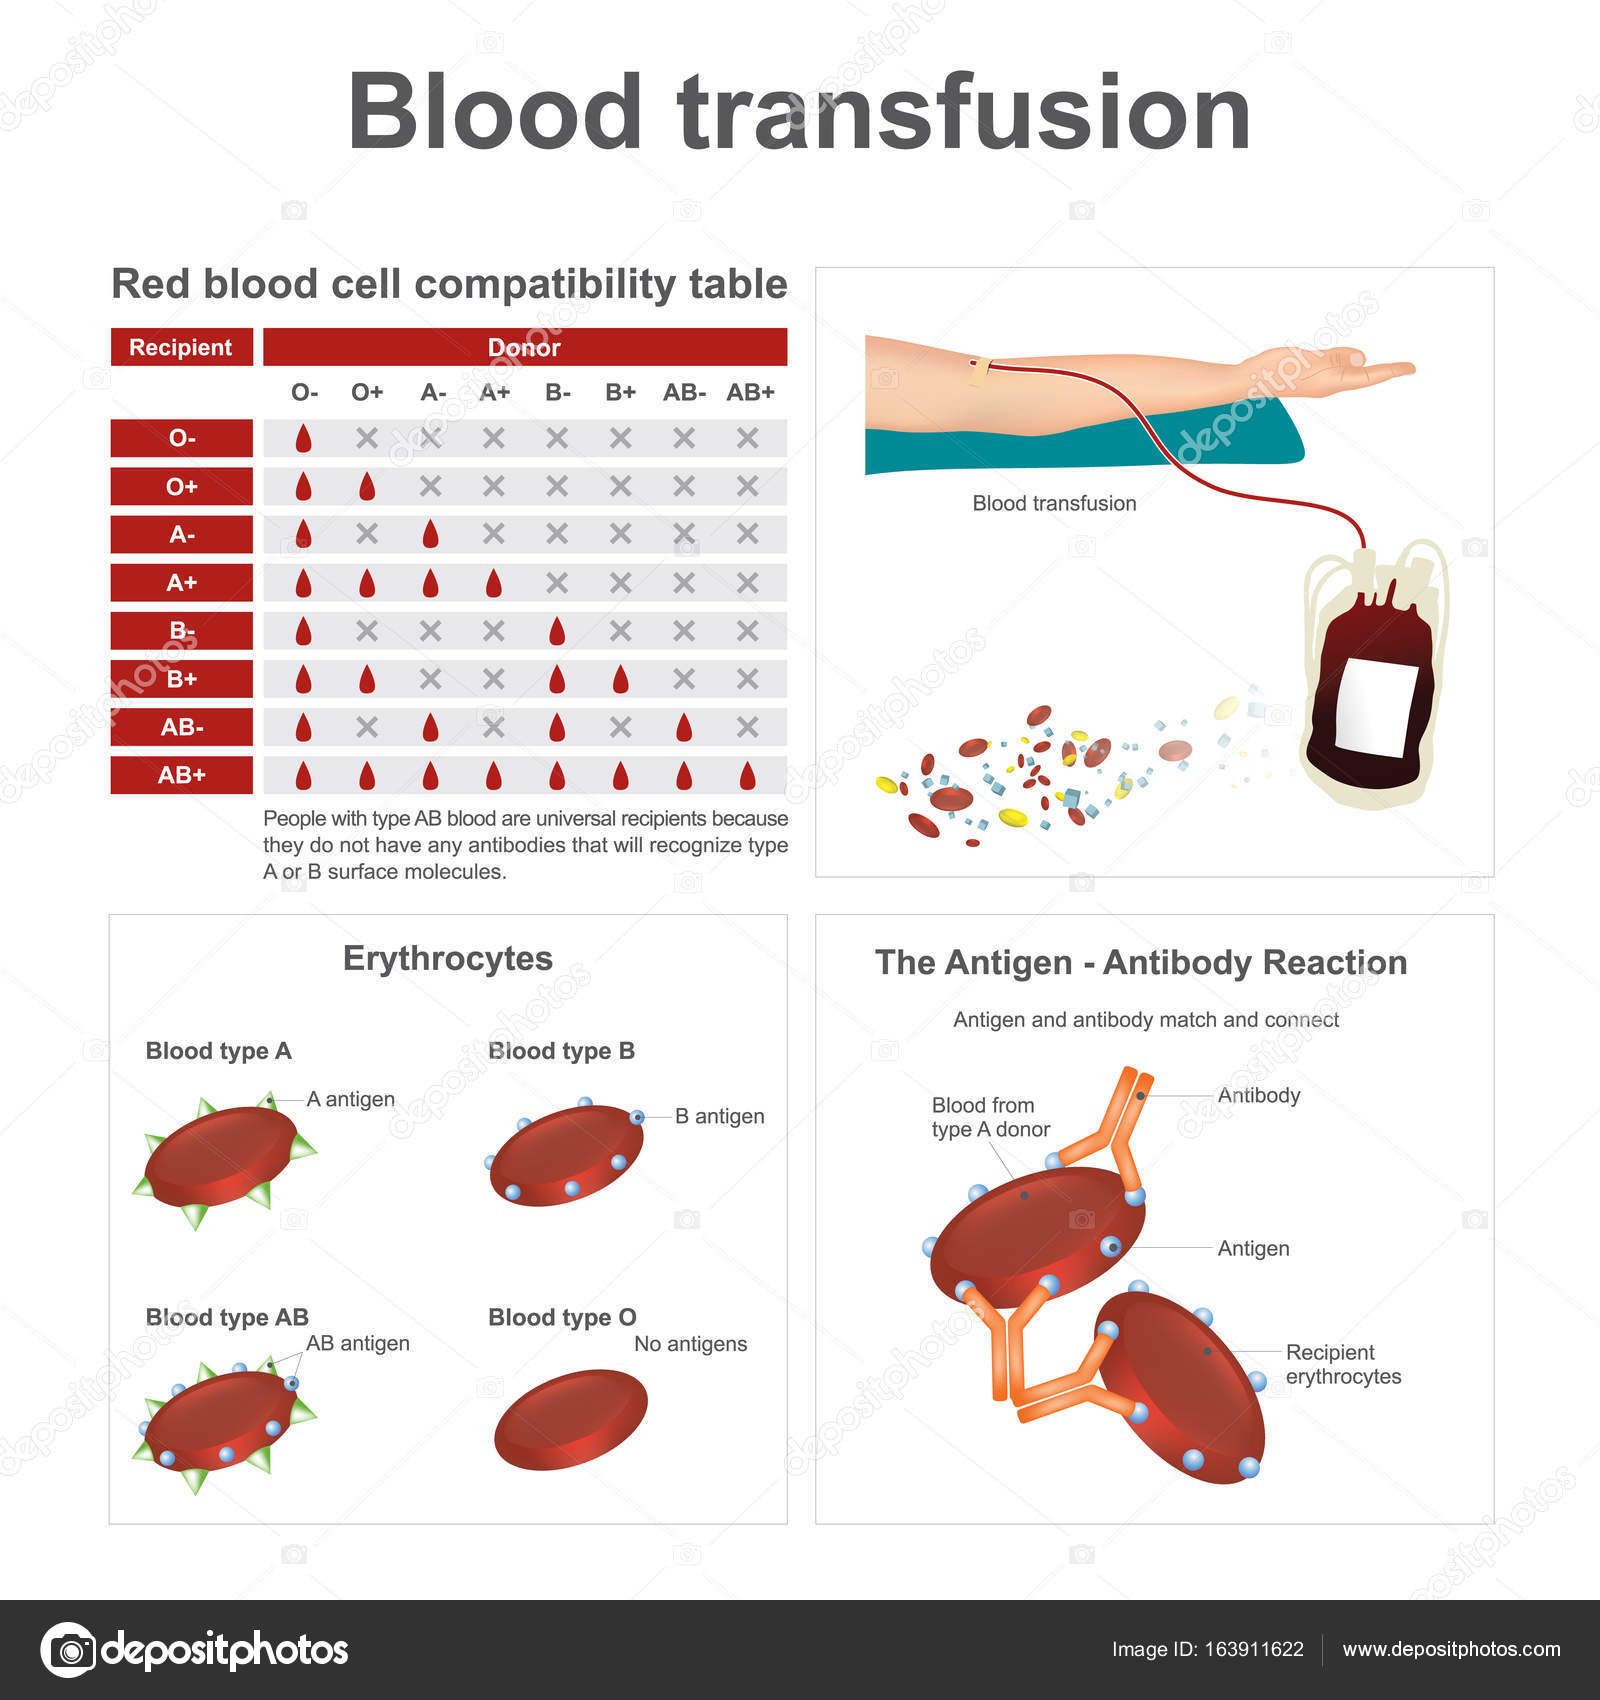 Blood transfusion there are two special blood types when it comes blood transfusion there are two special blood types when it comes to blood transfusions pooptronica